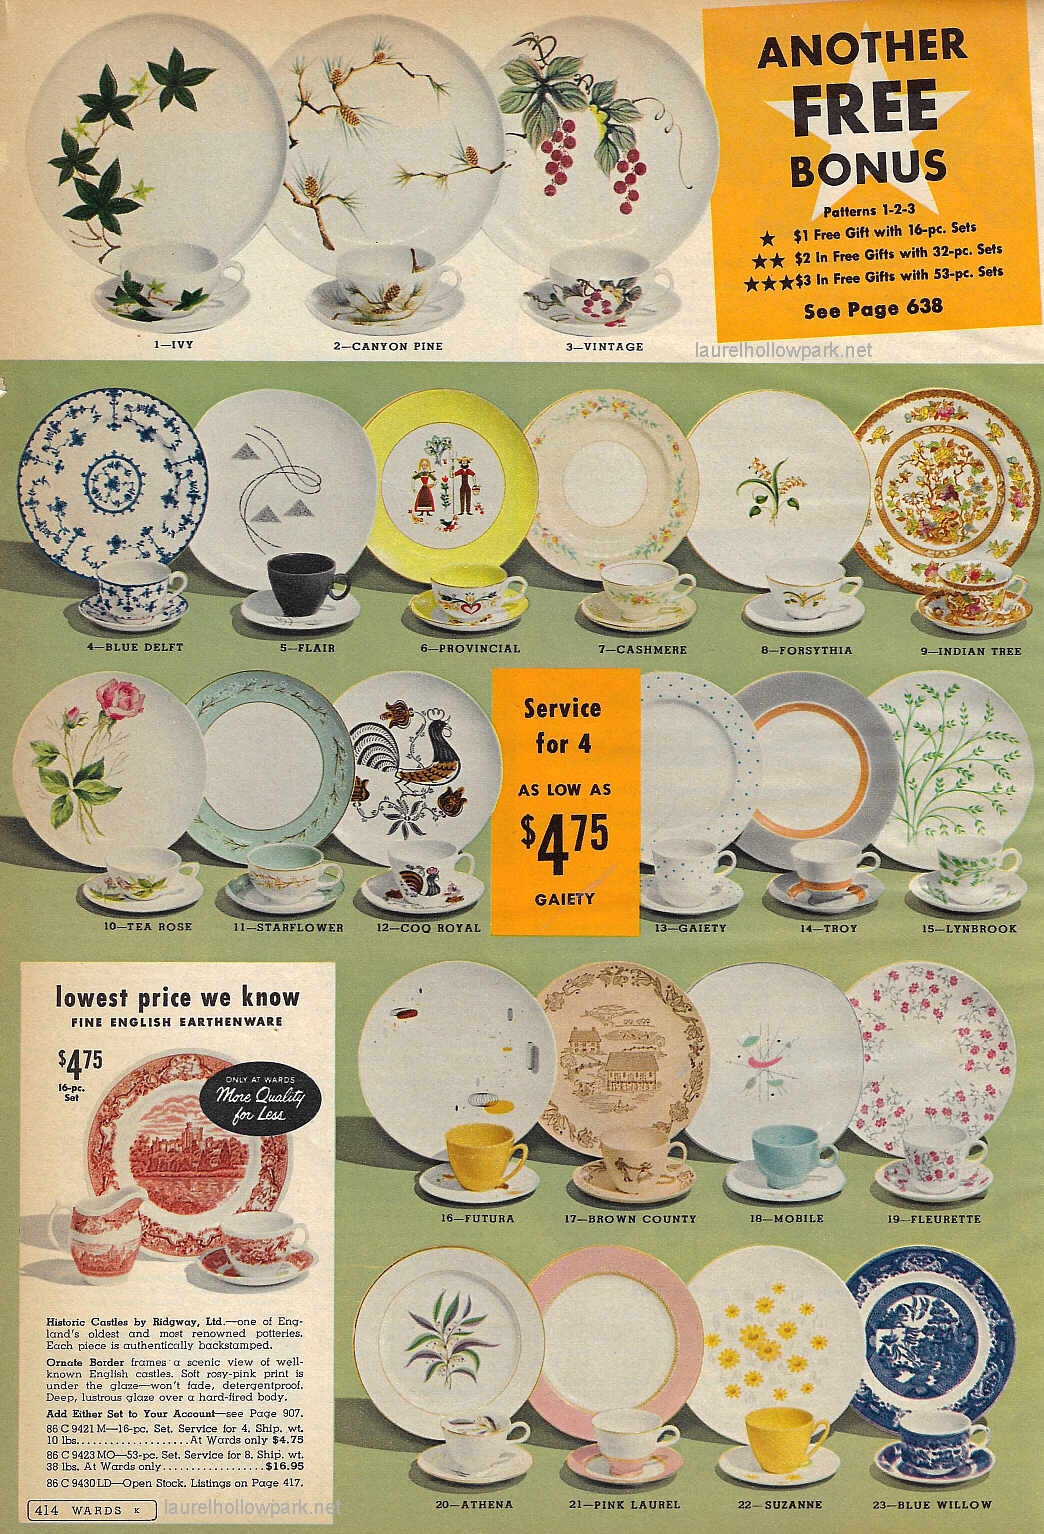 (4) Blue Deflt (12) Coq Royal and (17) Brown Country were made by the Royal China Company.  sc 1 st  Laurel Hollow Park & Montgomery Wards Dinnerware 1959